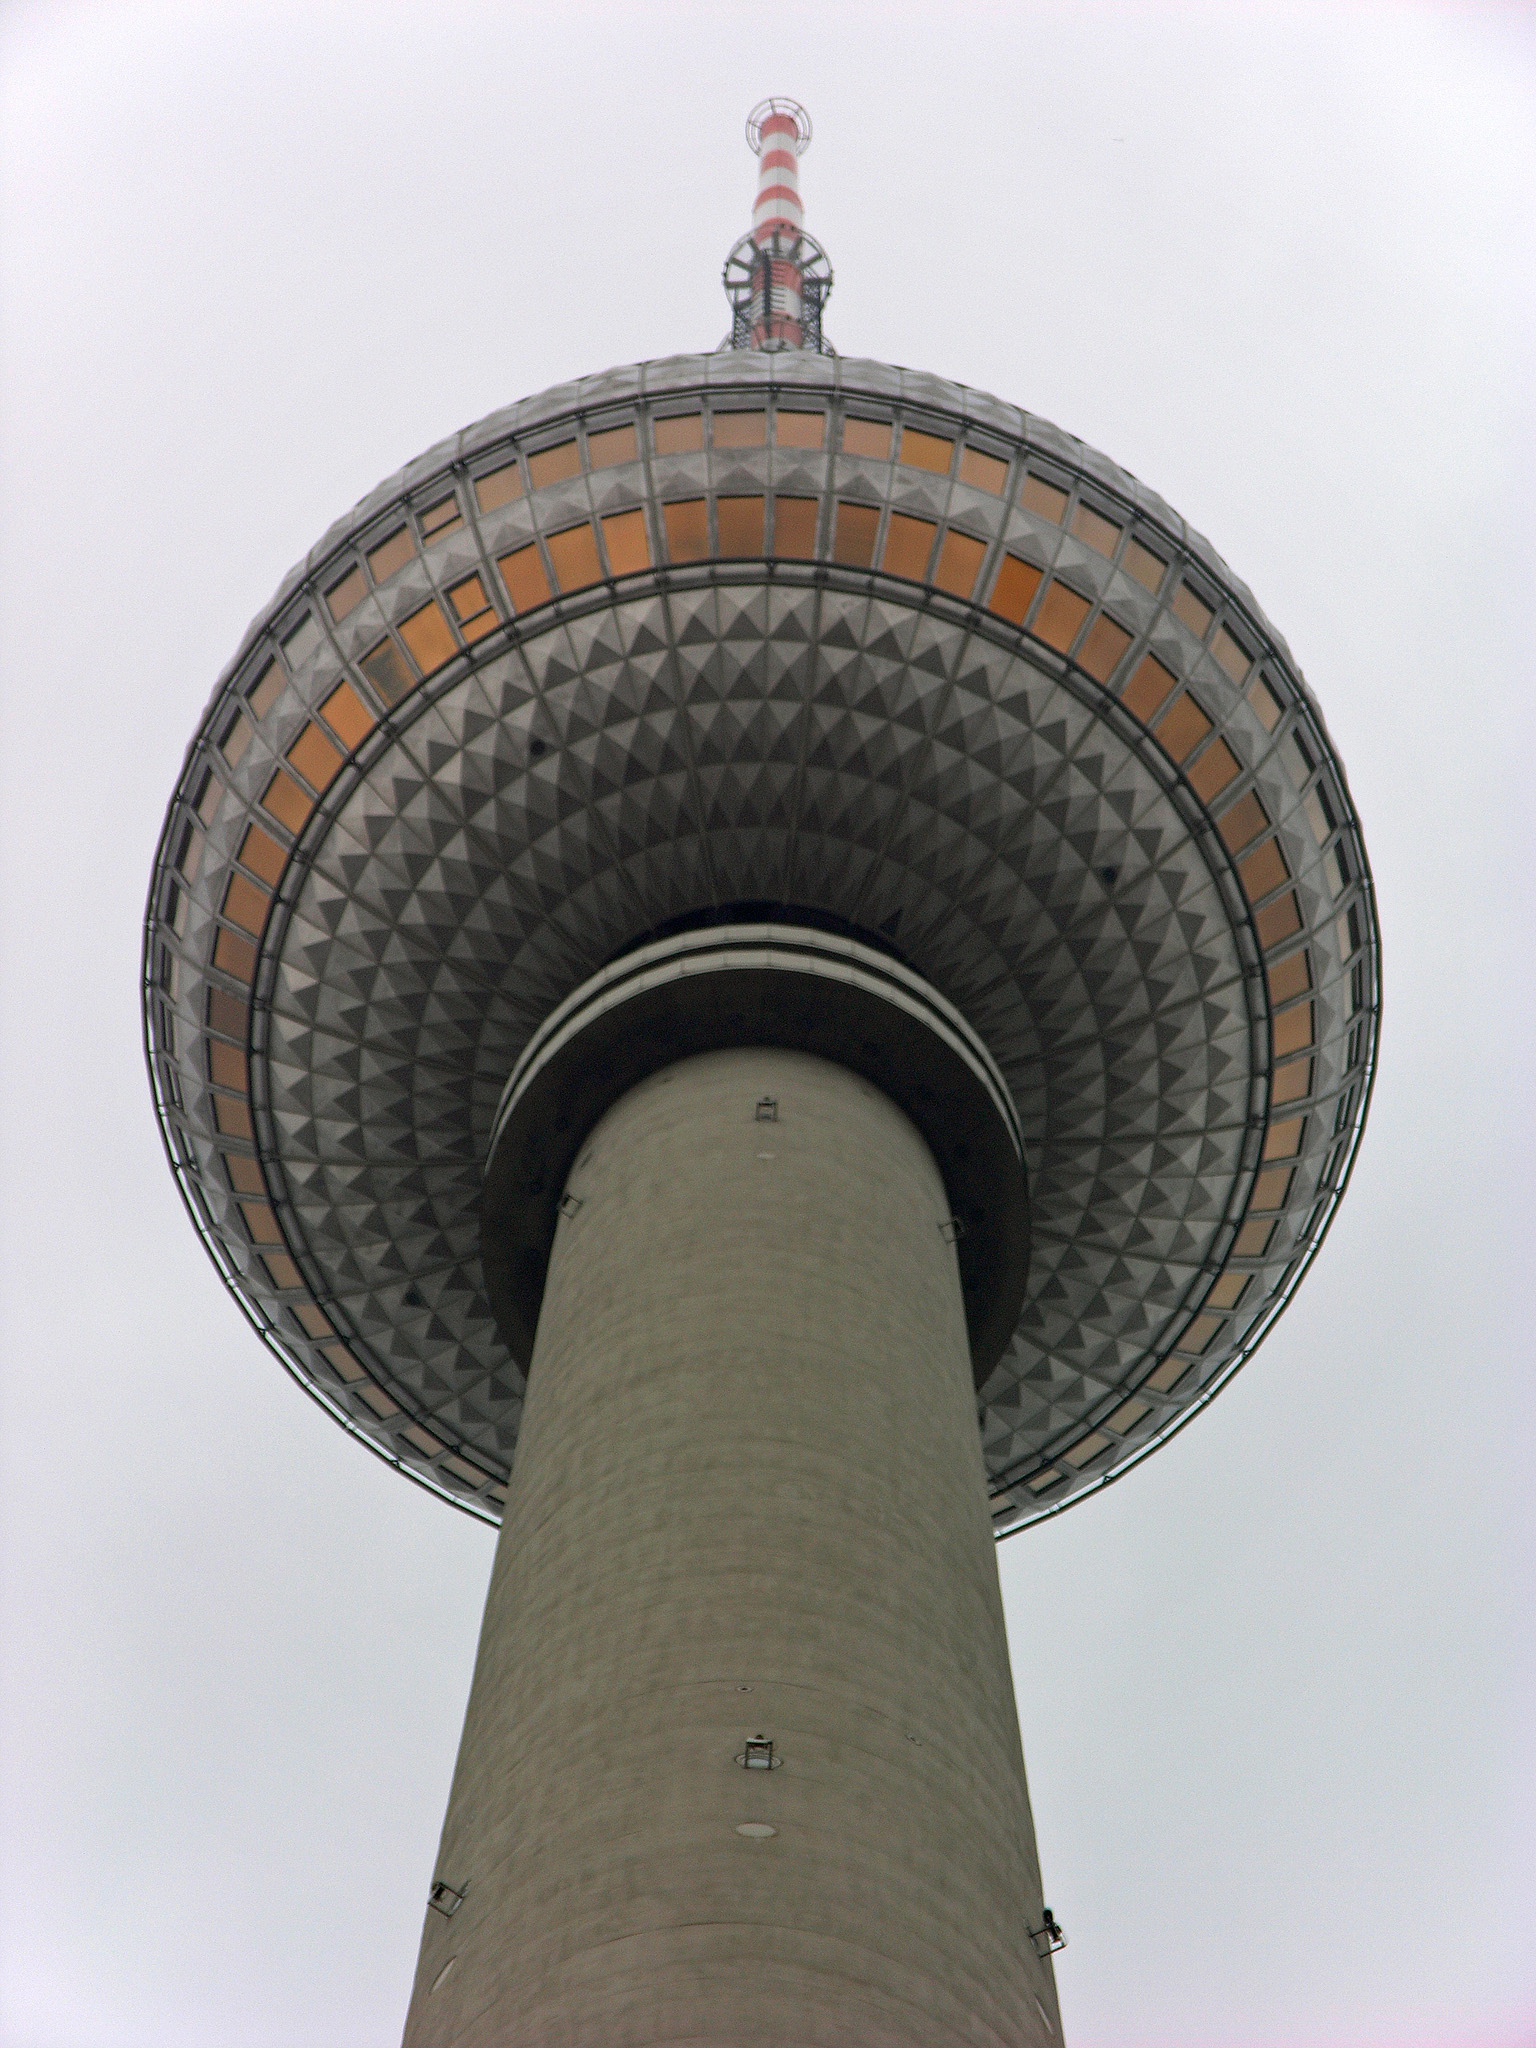 Day 4 - TV Tower at Alexanderplatz